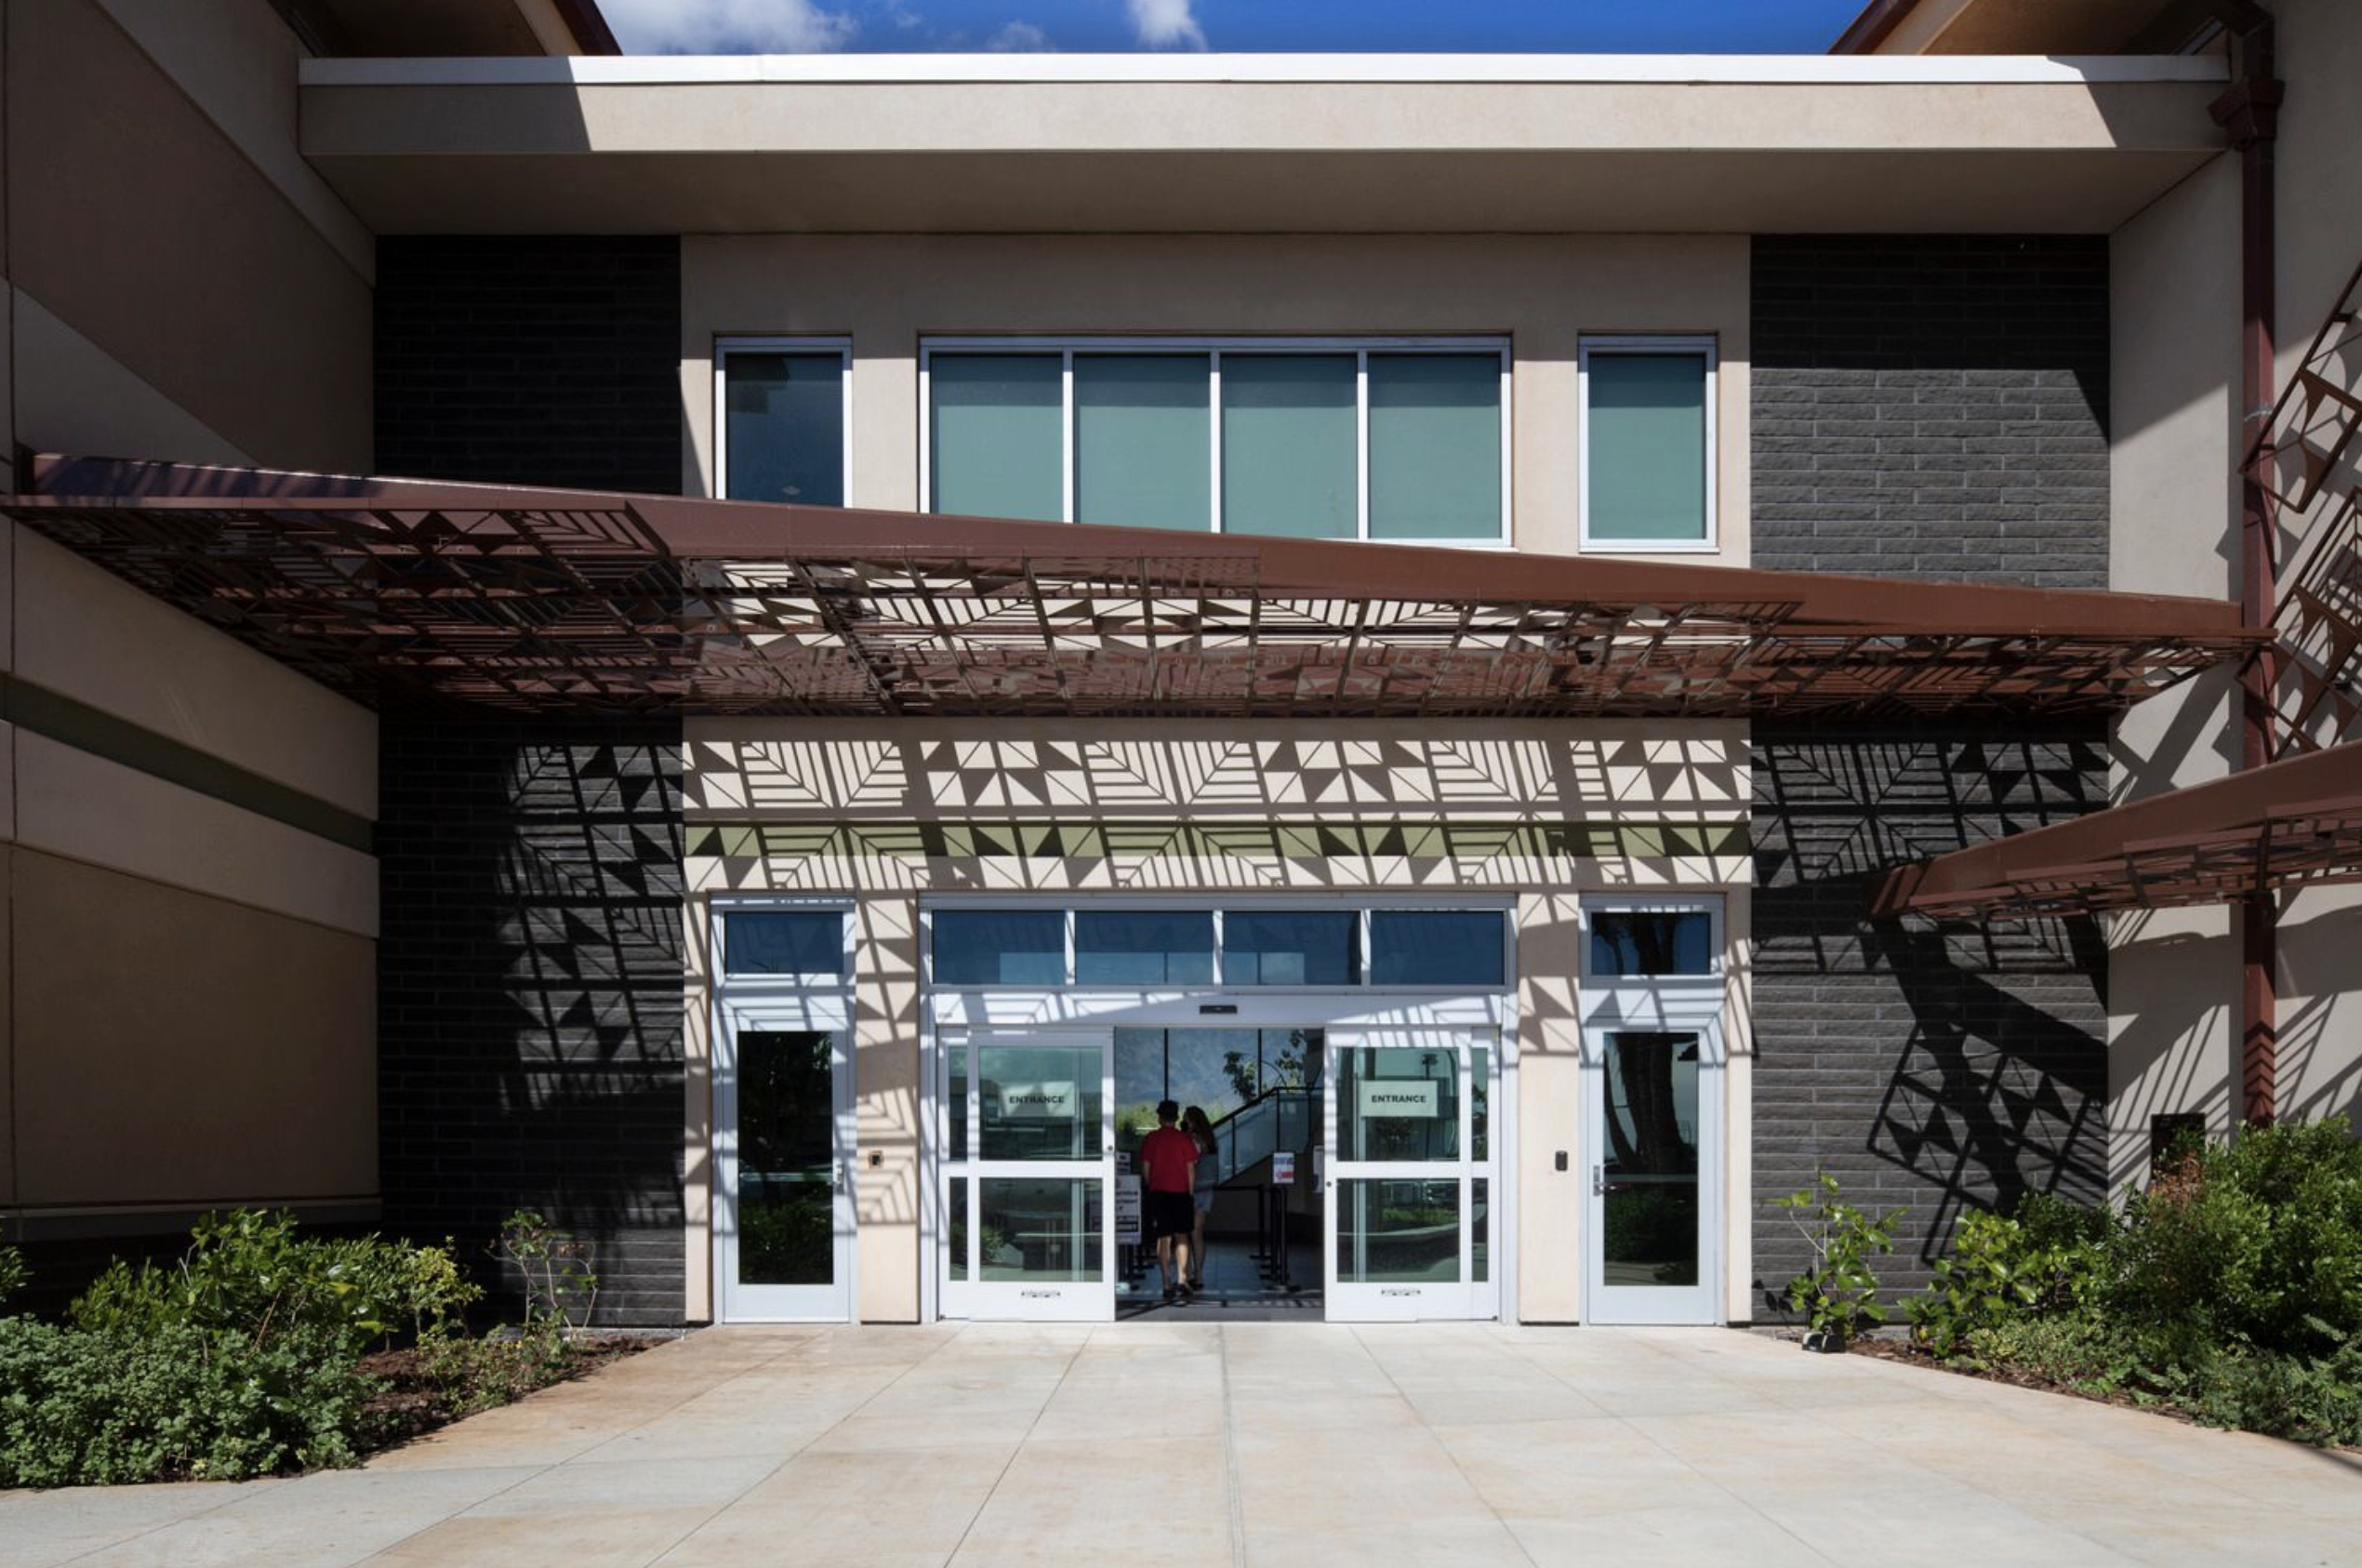 Island Design Firm Brings Functional Patterns to New Maui County Service Center